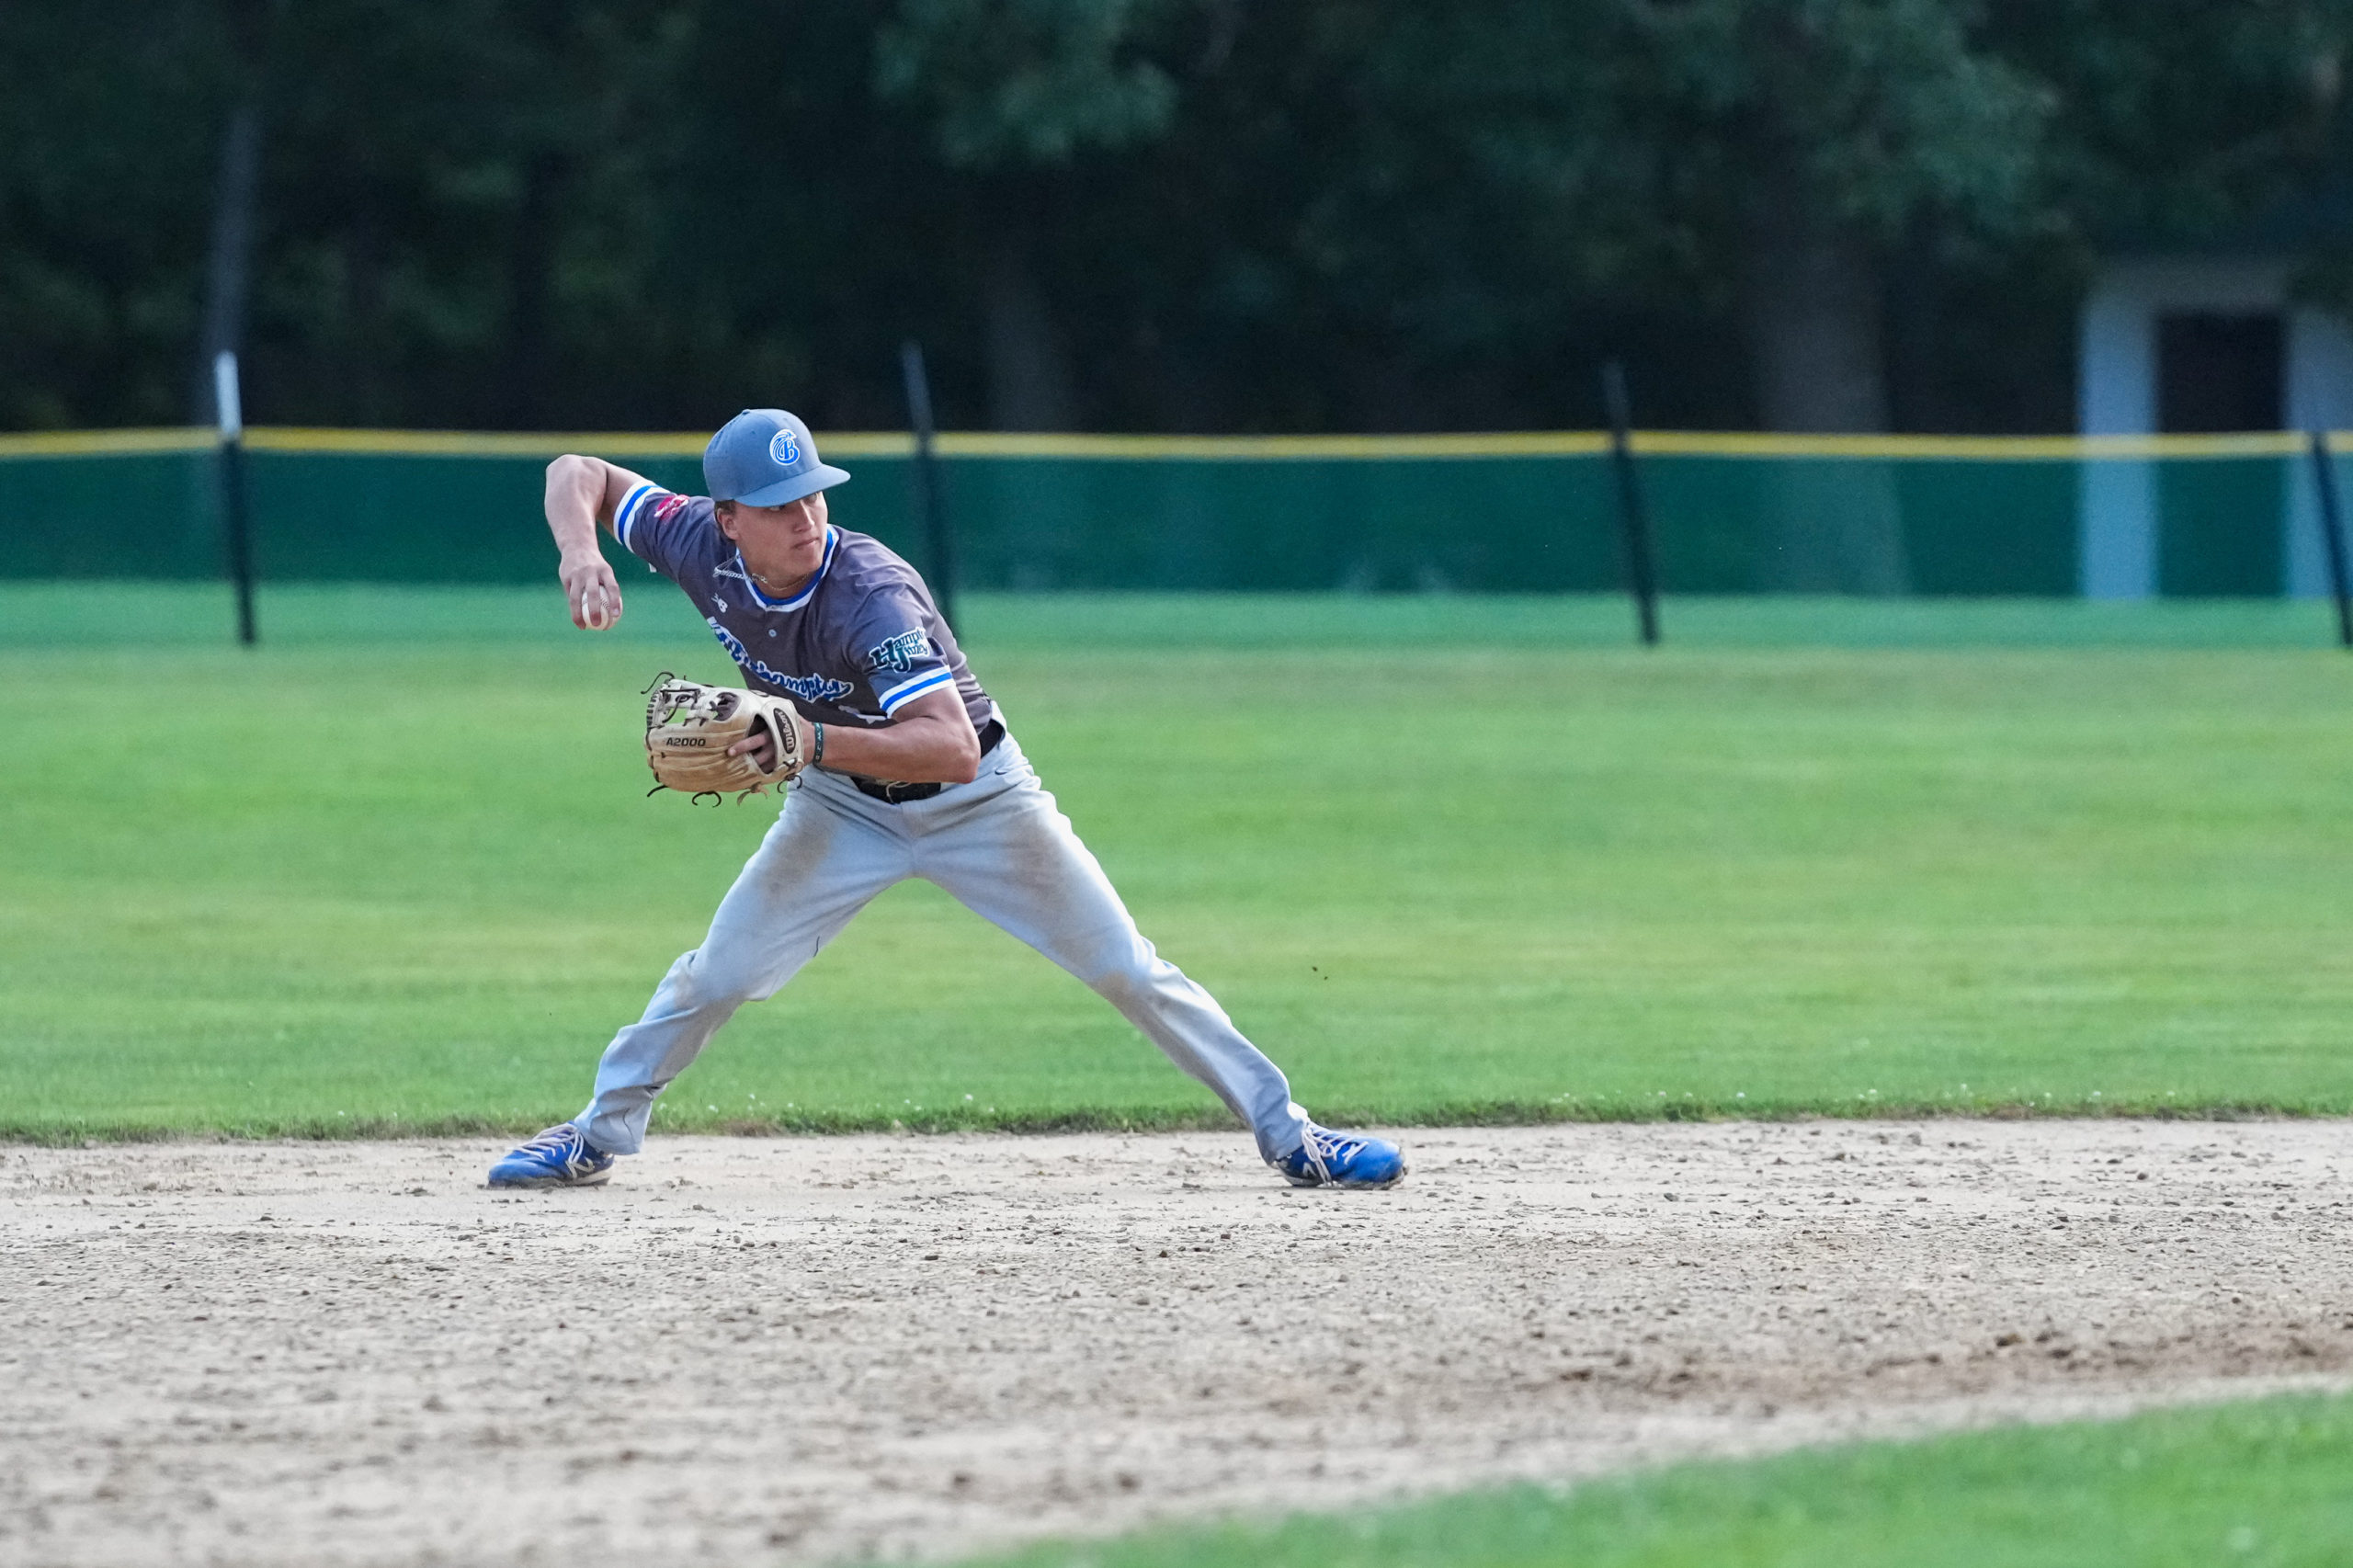 Breakers shortstop Thomas Eitniear (Toledo) throws to first for an out.